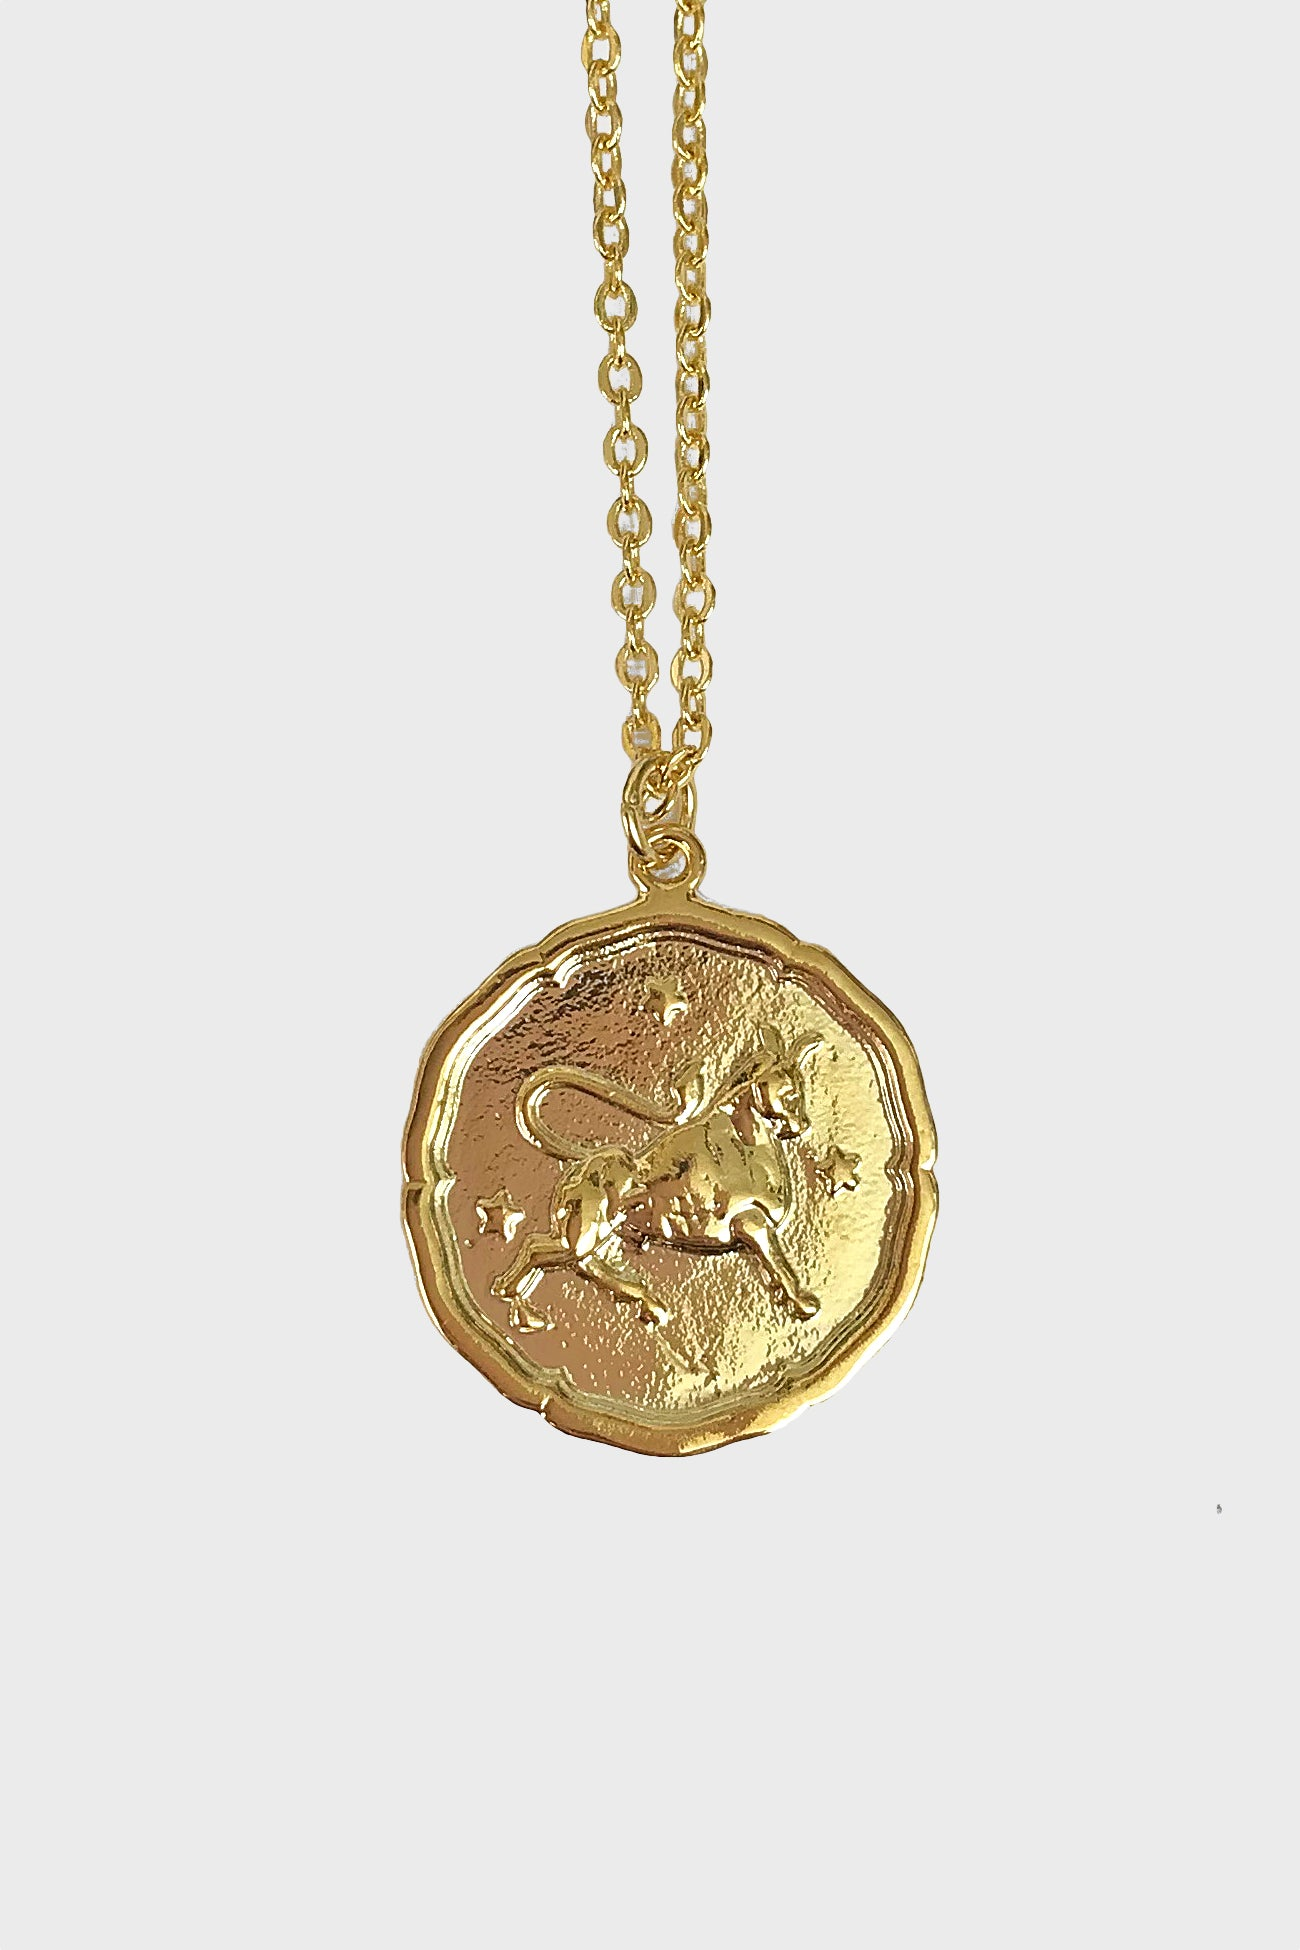 Taurus vintage medallion necklace